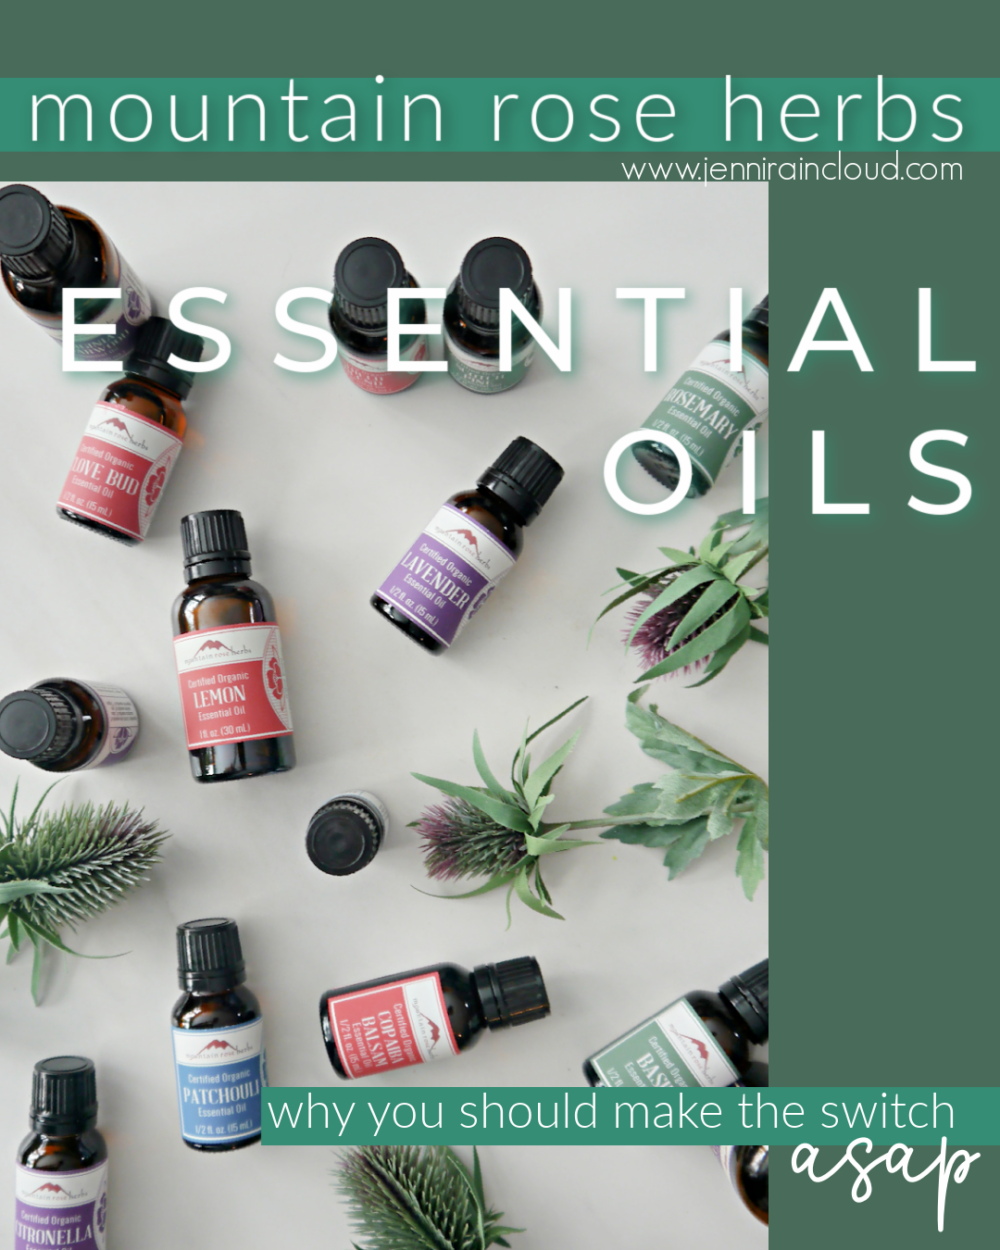 Mountain Rose Herbs Essential Oil Review